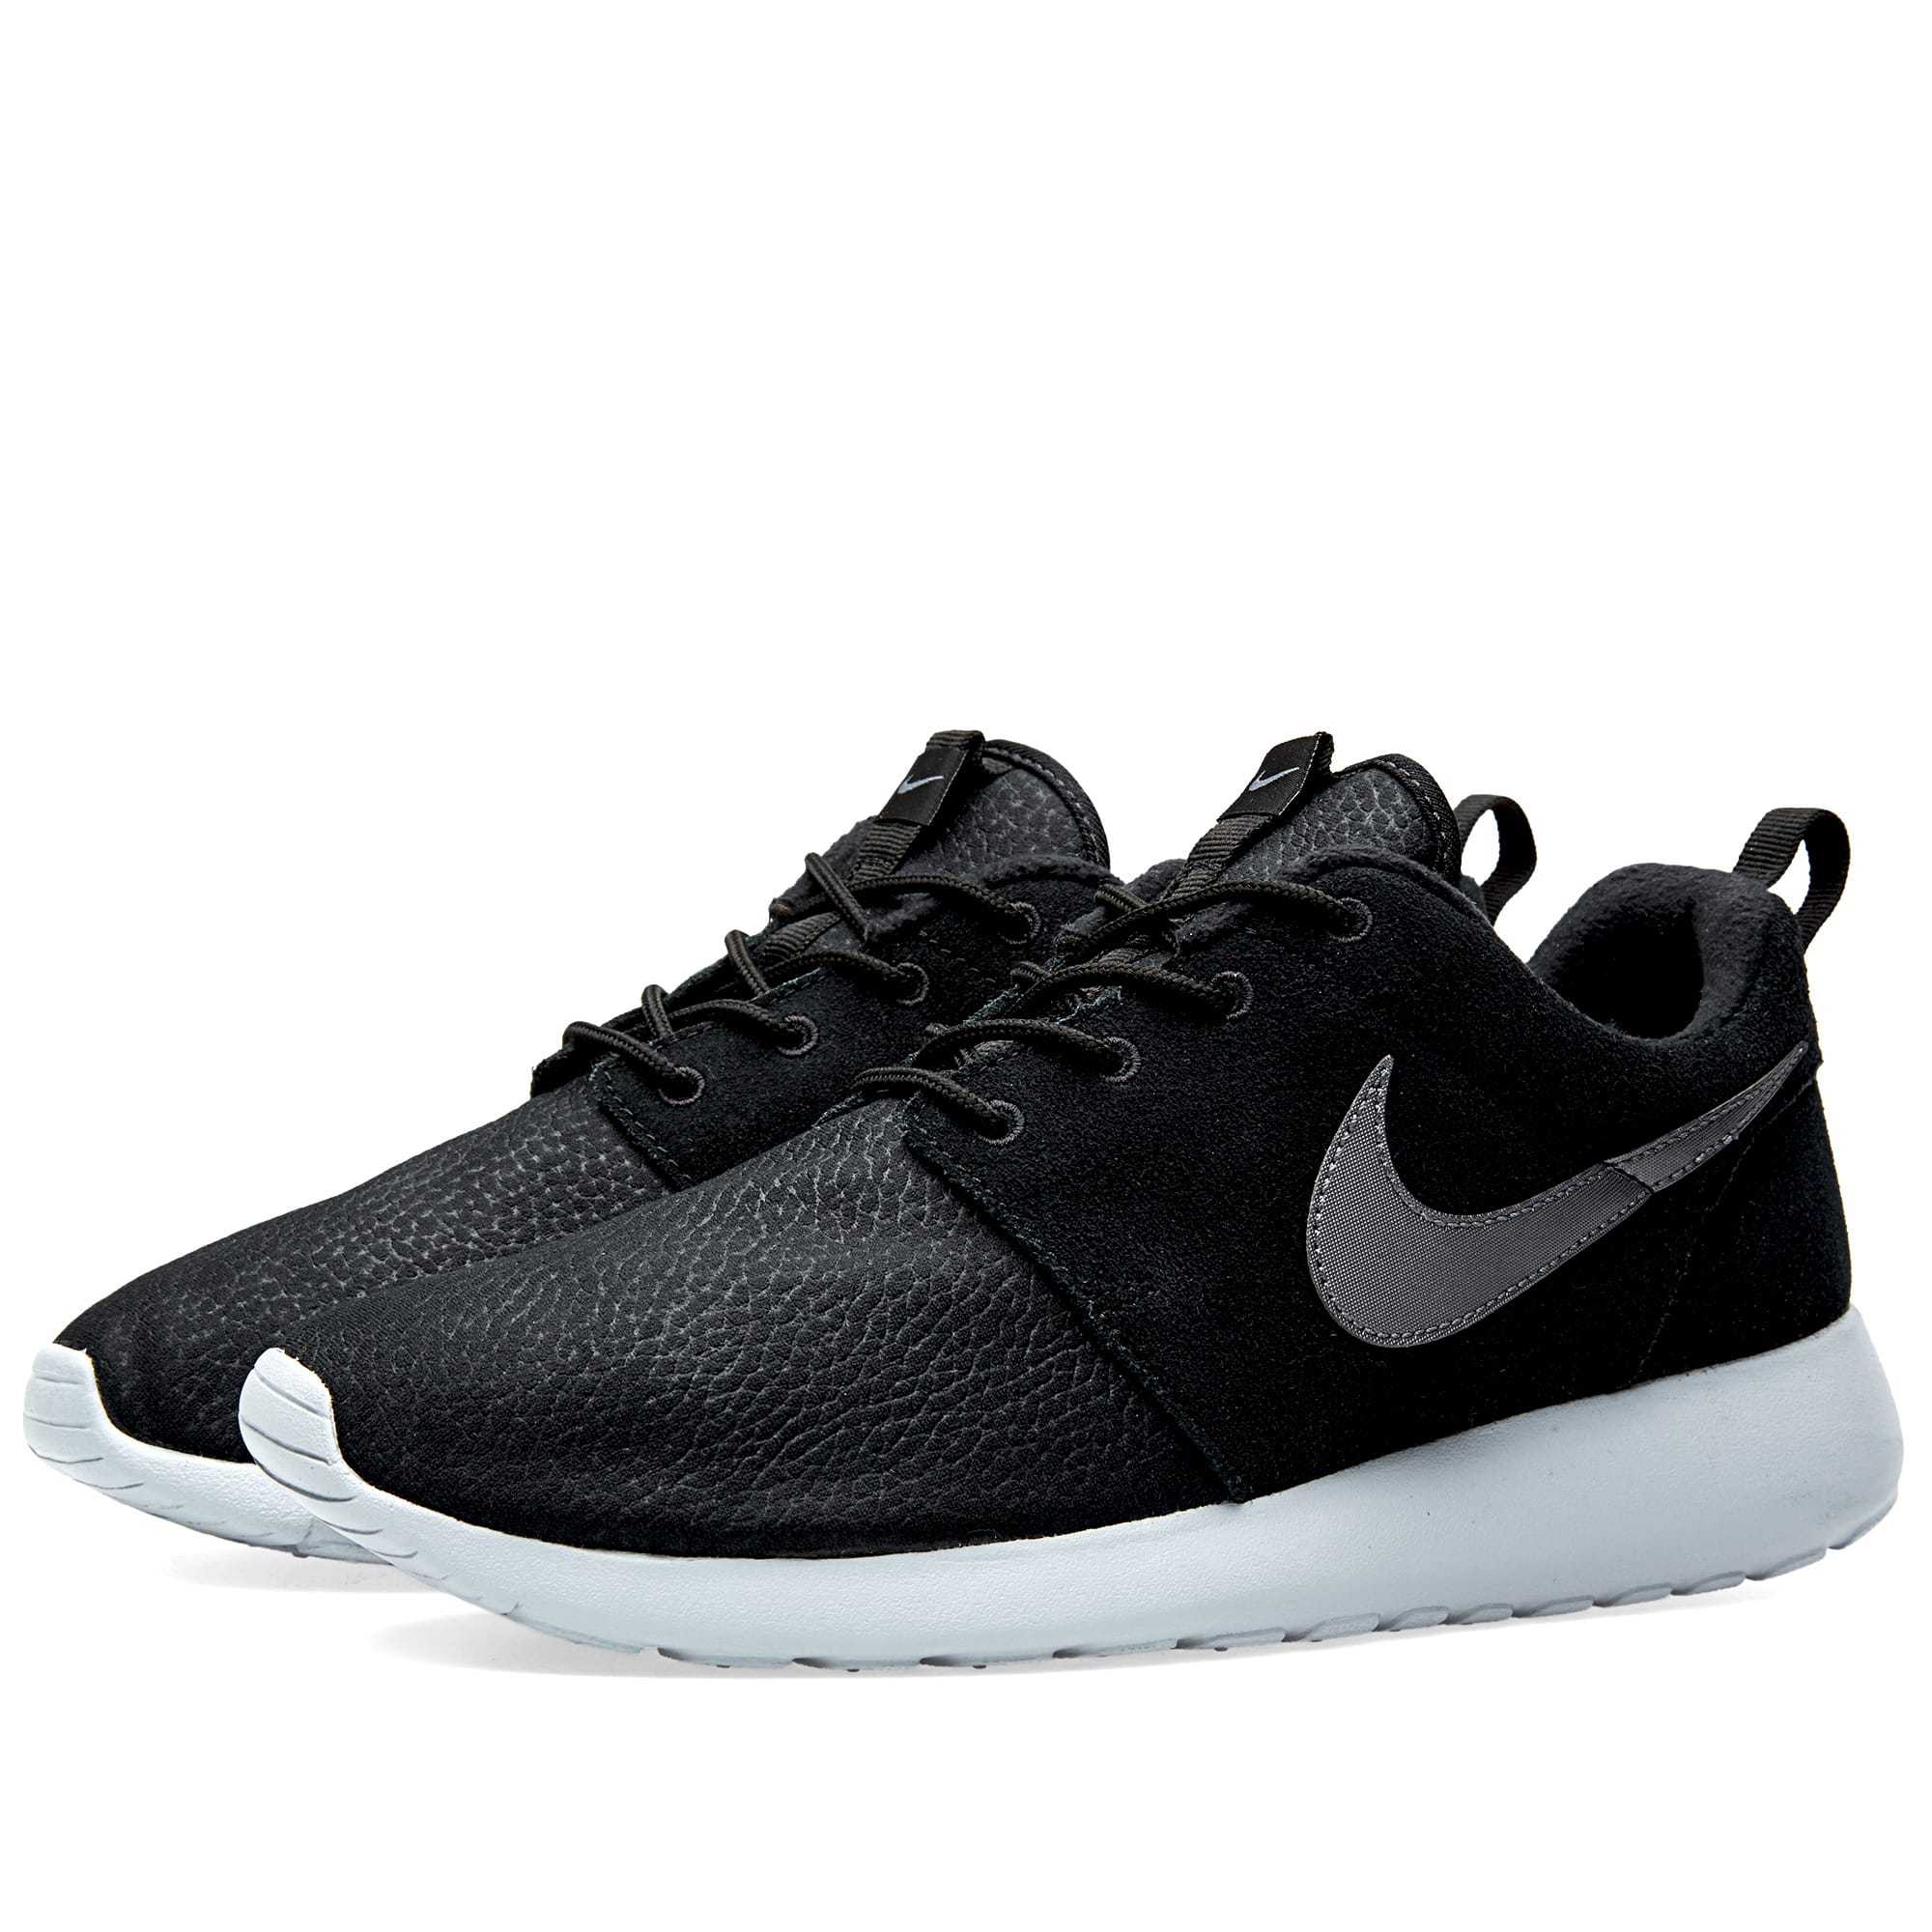 timeless design 88f31 2eca4 Nike Roshe One Suede Black   Wolf Grey   END.